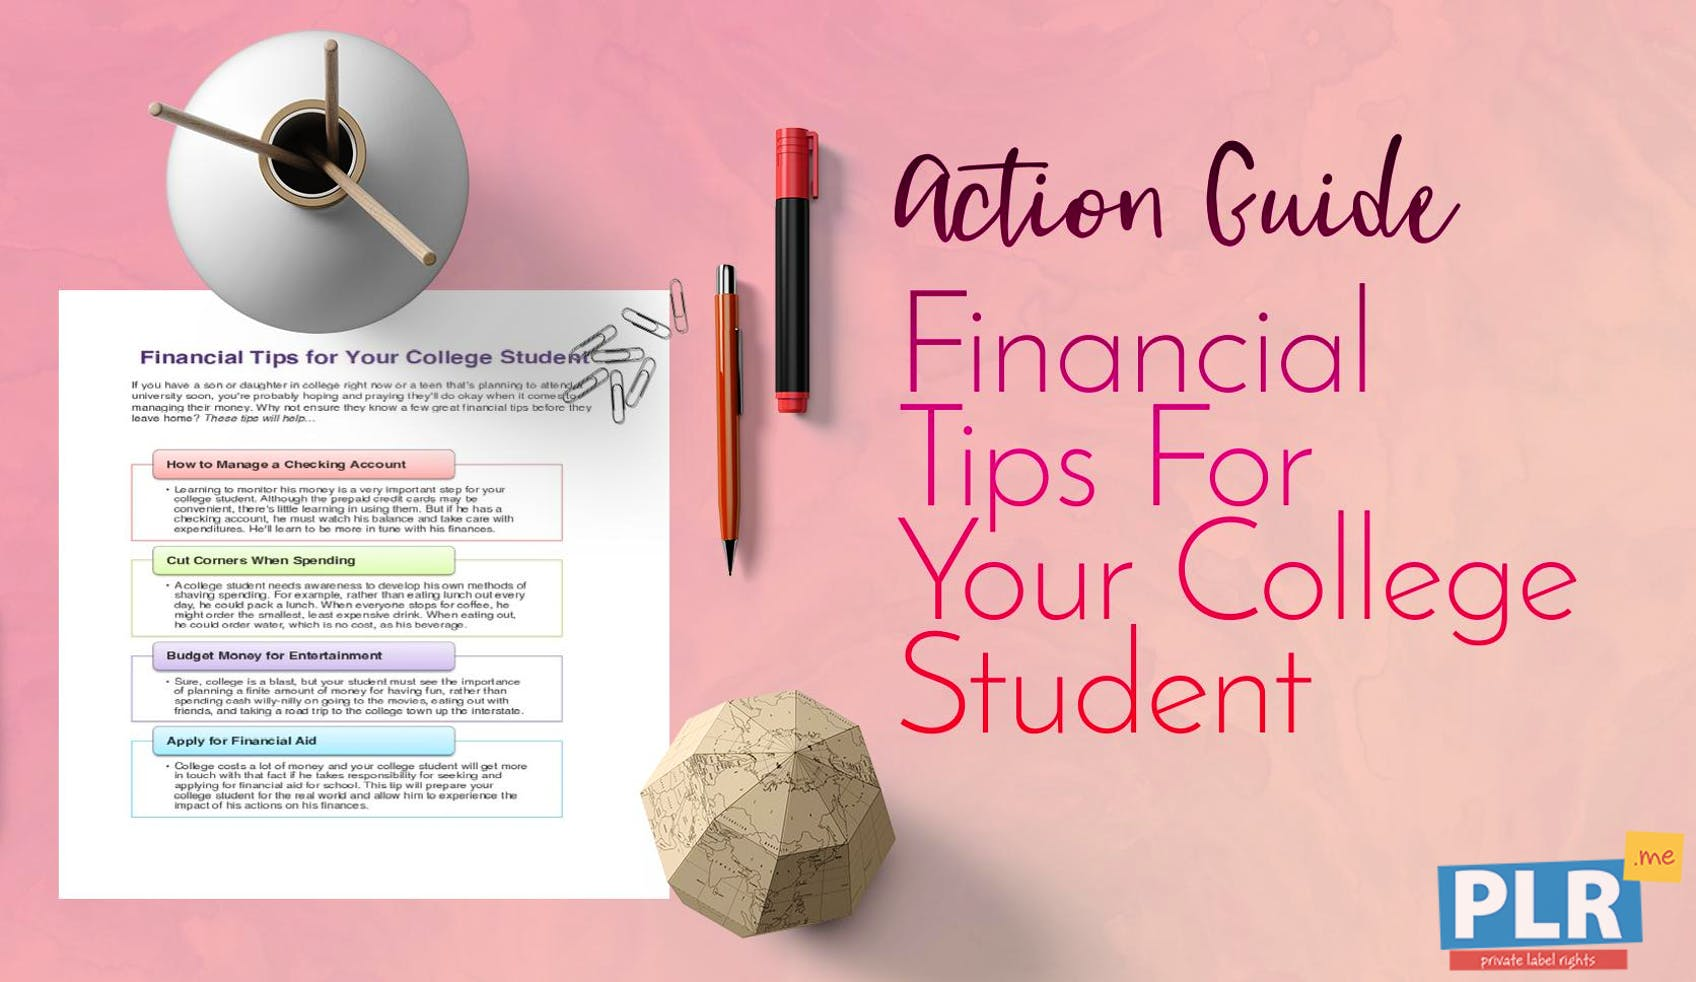 Financial Tips For Your College Student